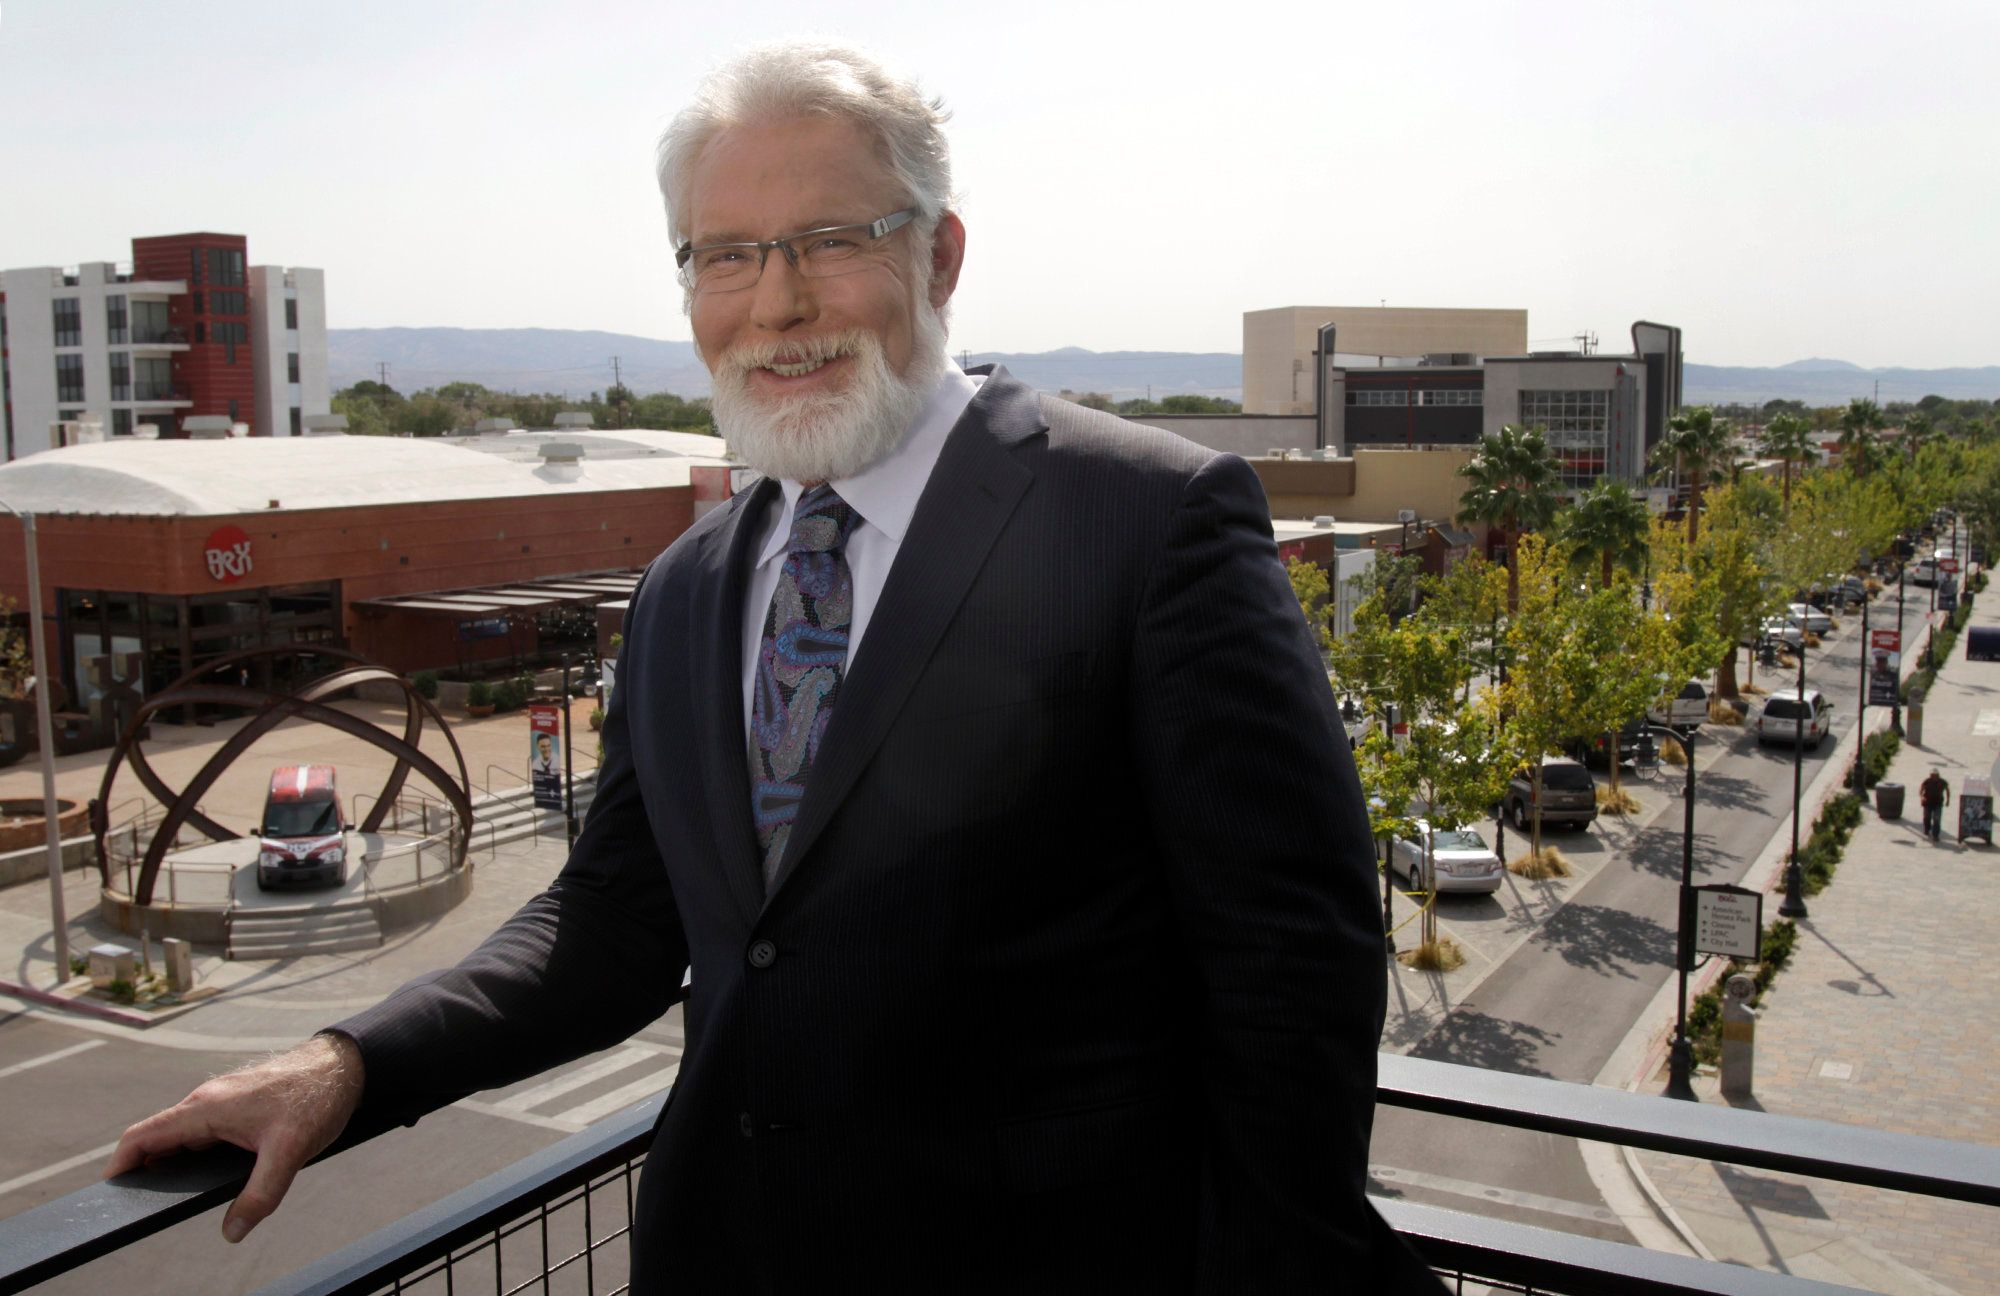 LANCASTER, CA SEP. 11, 2013. Mayor of Lancaster, R. Rex Parris on  the top level of the Lancaster Museum of Art and History overlooking West Lancaster Blvd., the main drag of the city on Sep. 11, 2013. Mayor of Lancaster, Rex Parris, and his efforts to bring in Chinese businesses to the city.  (Photo by Lawrence K. Ho/Los Angeles Times via Getty Images)